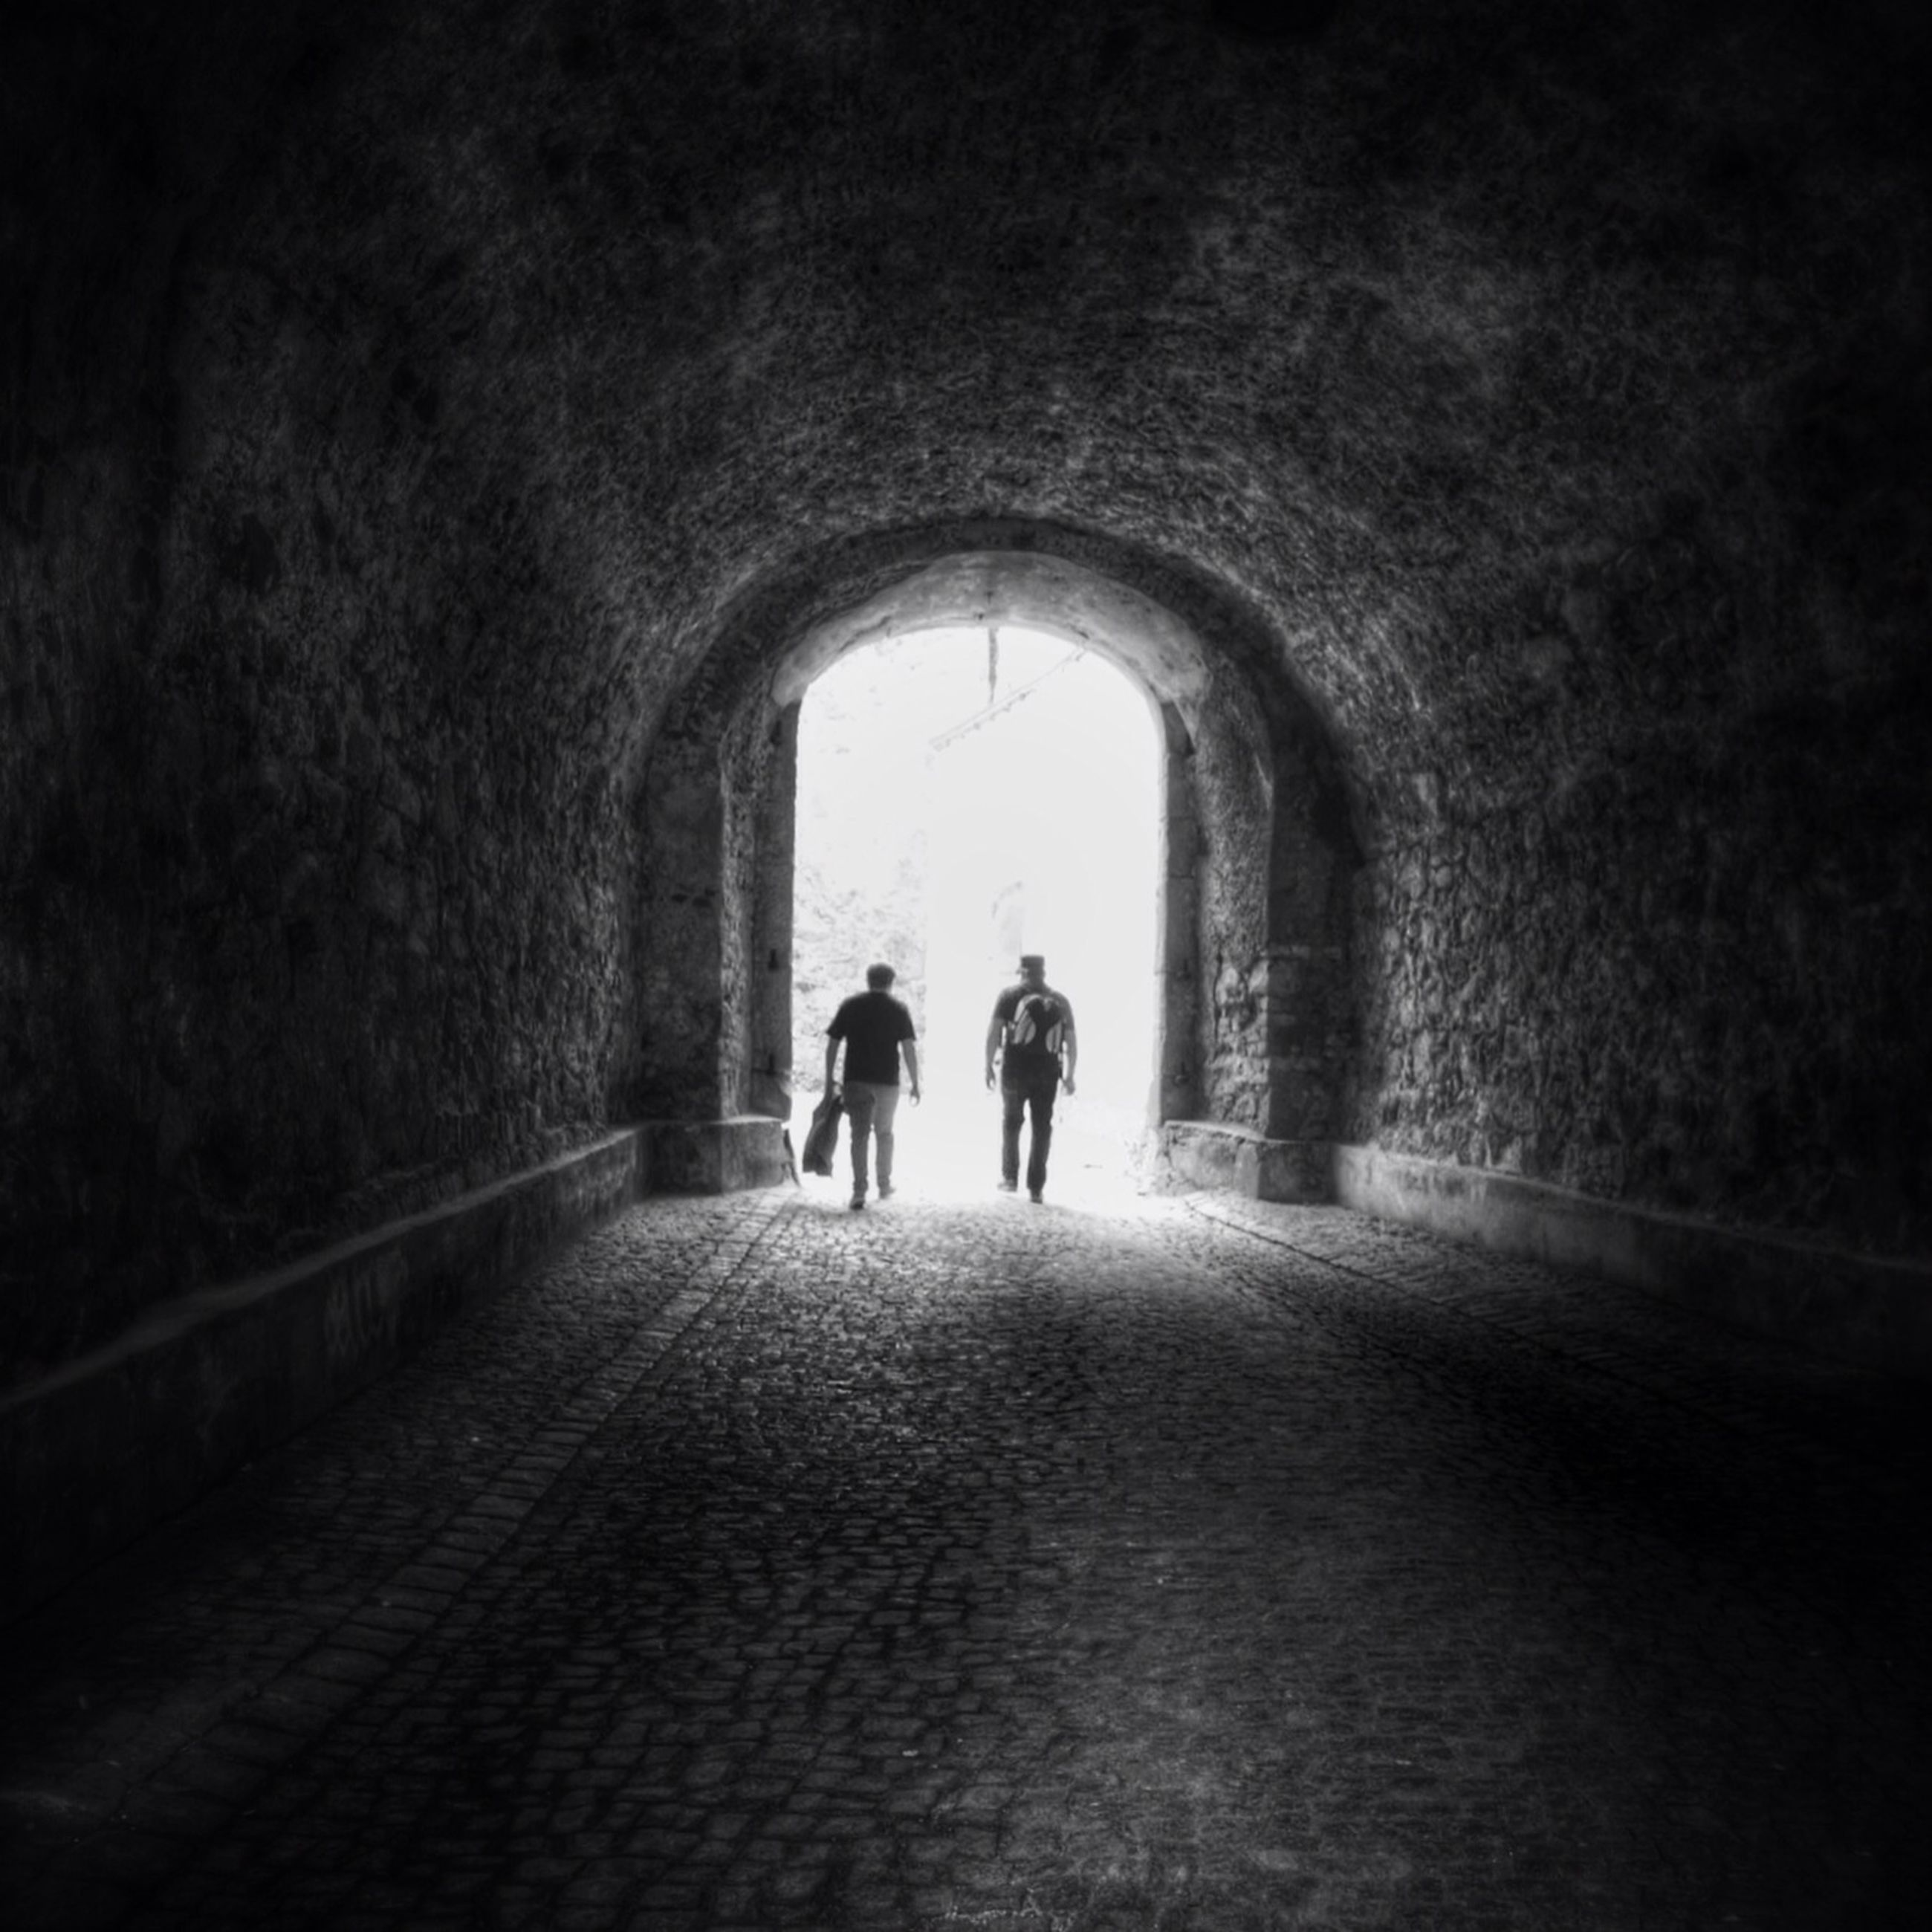 tunnel, indoors, arch, full length, walking, rear view, men, lifestyles, silhouette, archway, the way forward, leisure activity, togetherness, person, architecture, light at the end of the tunnel, built structure